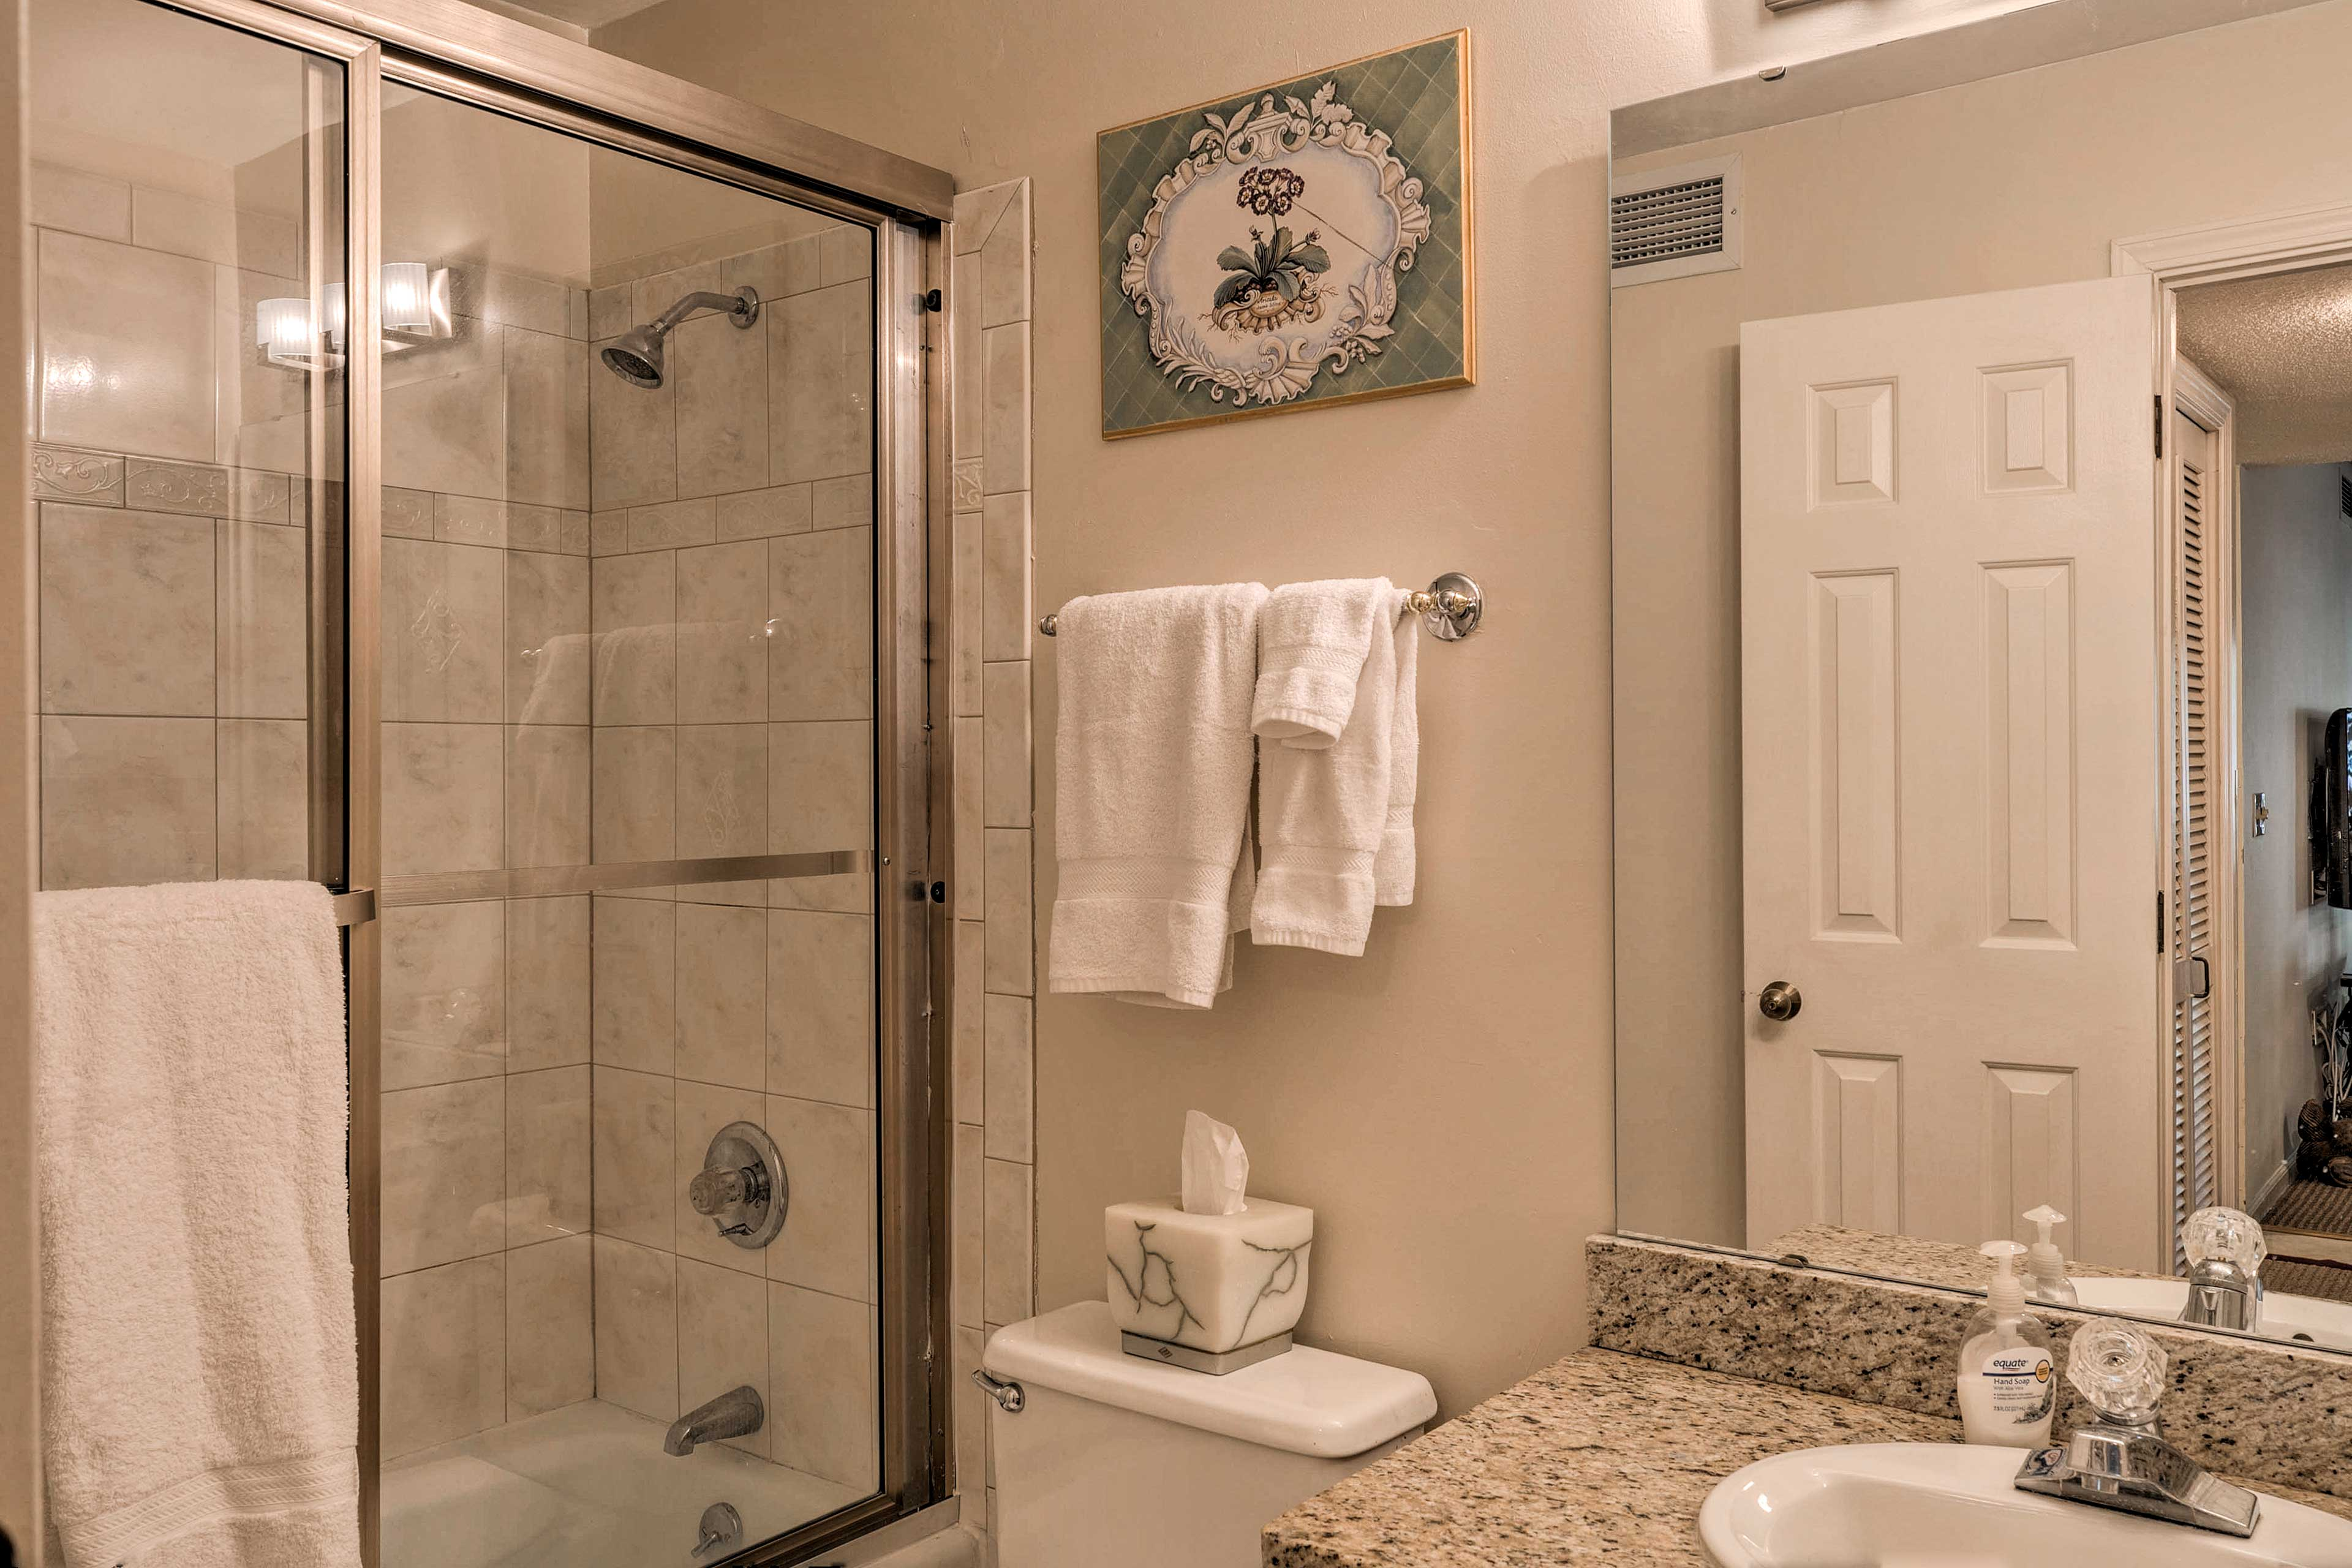 A second en-suite bathroom is provided for your convenience.